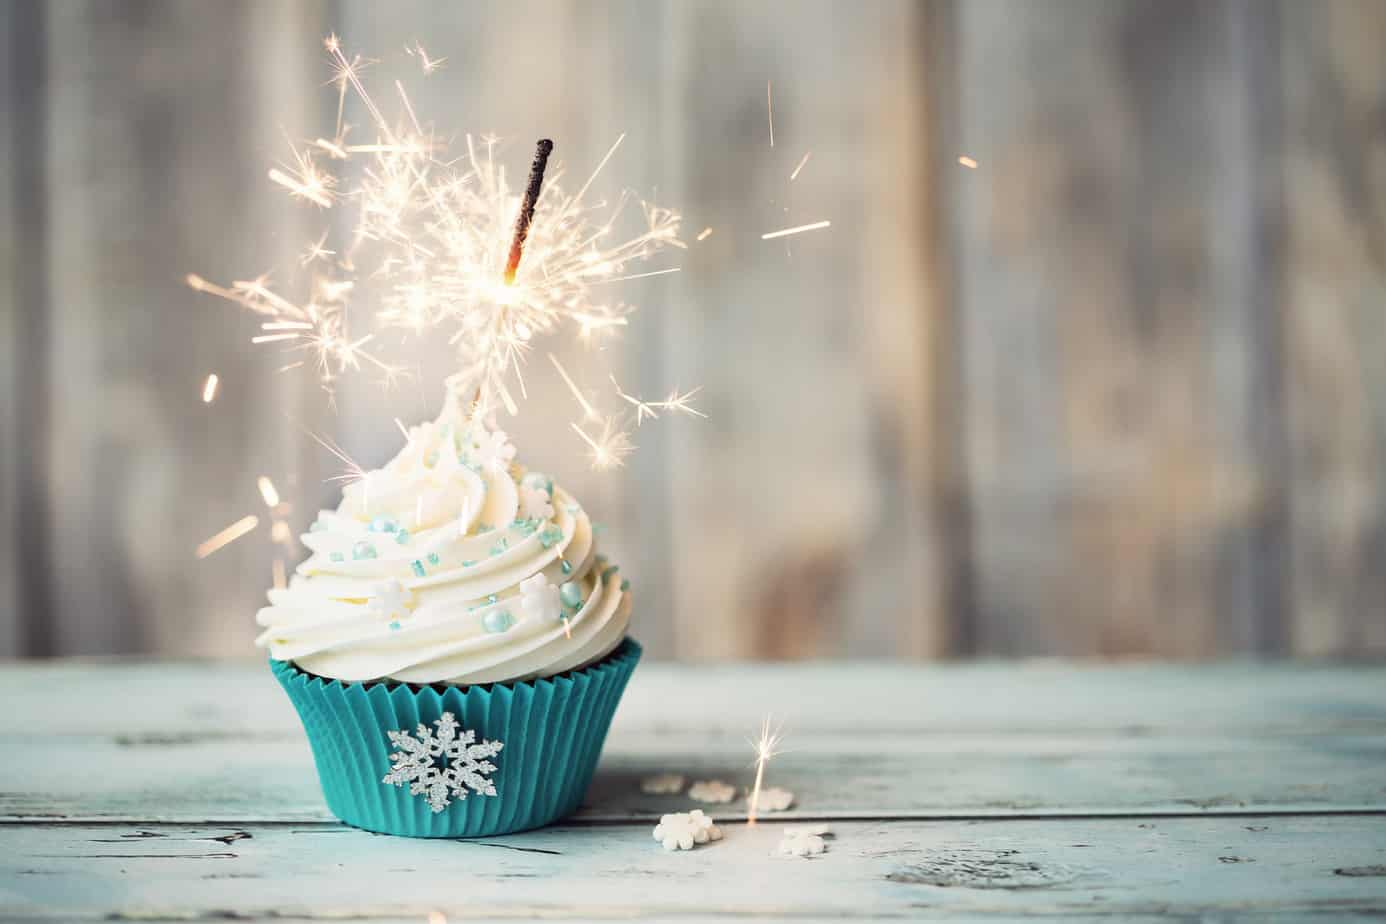 cupcake with a lit sparkler in it.